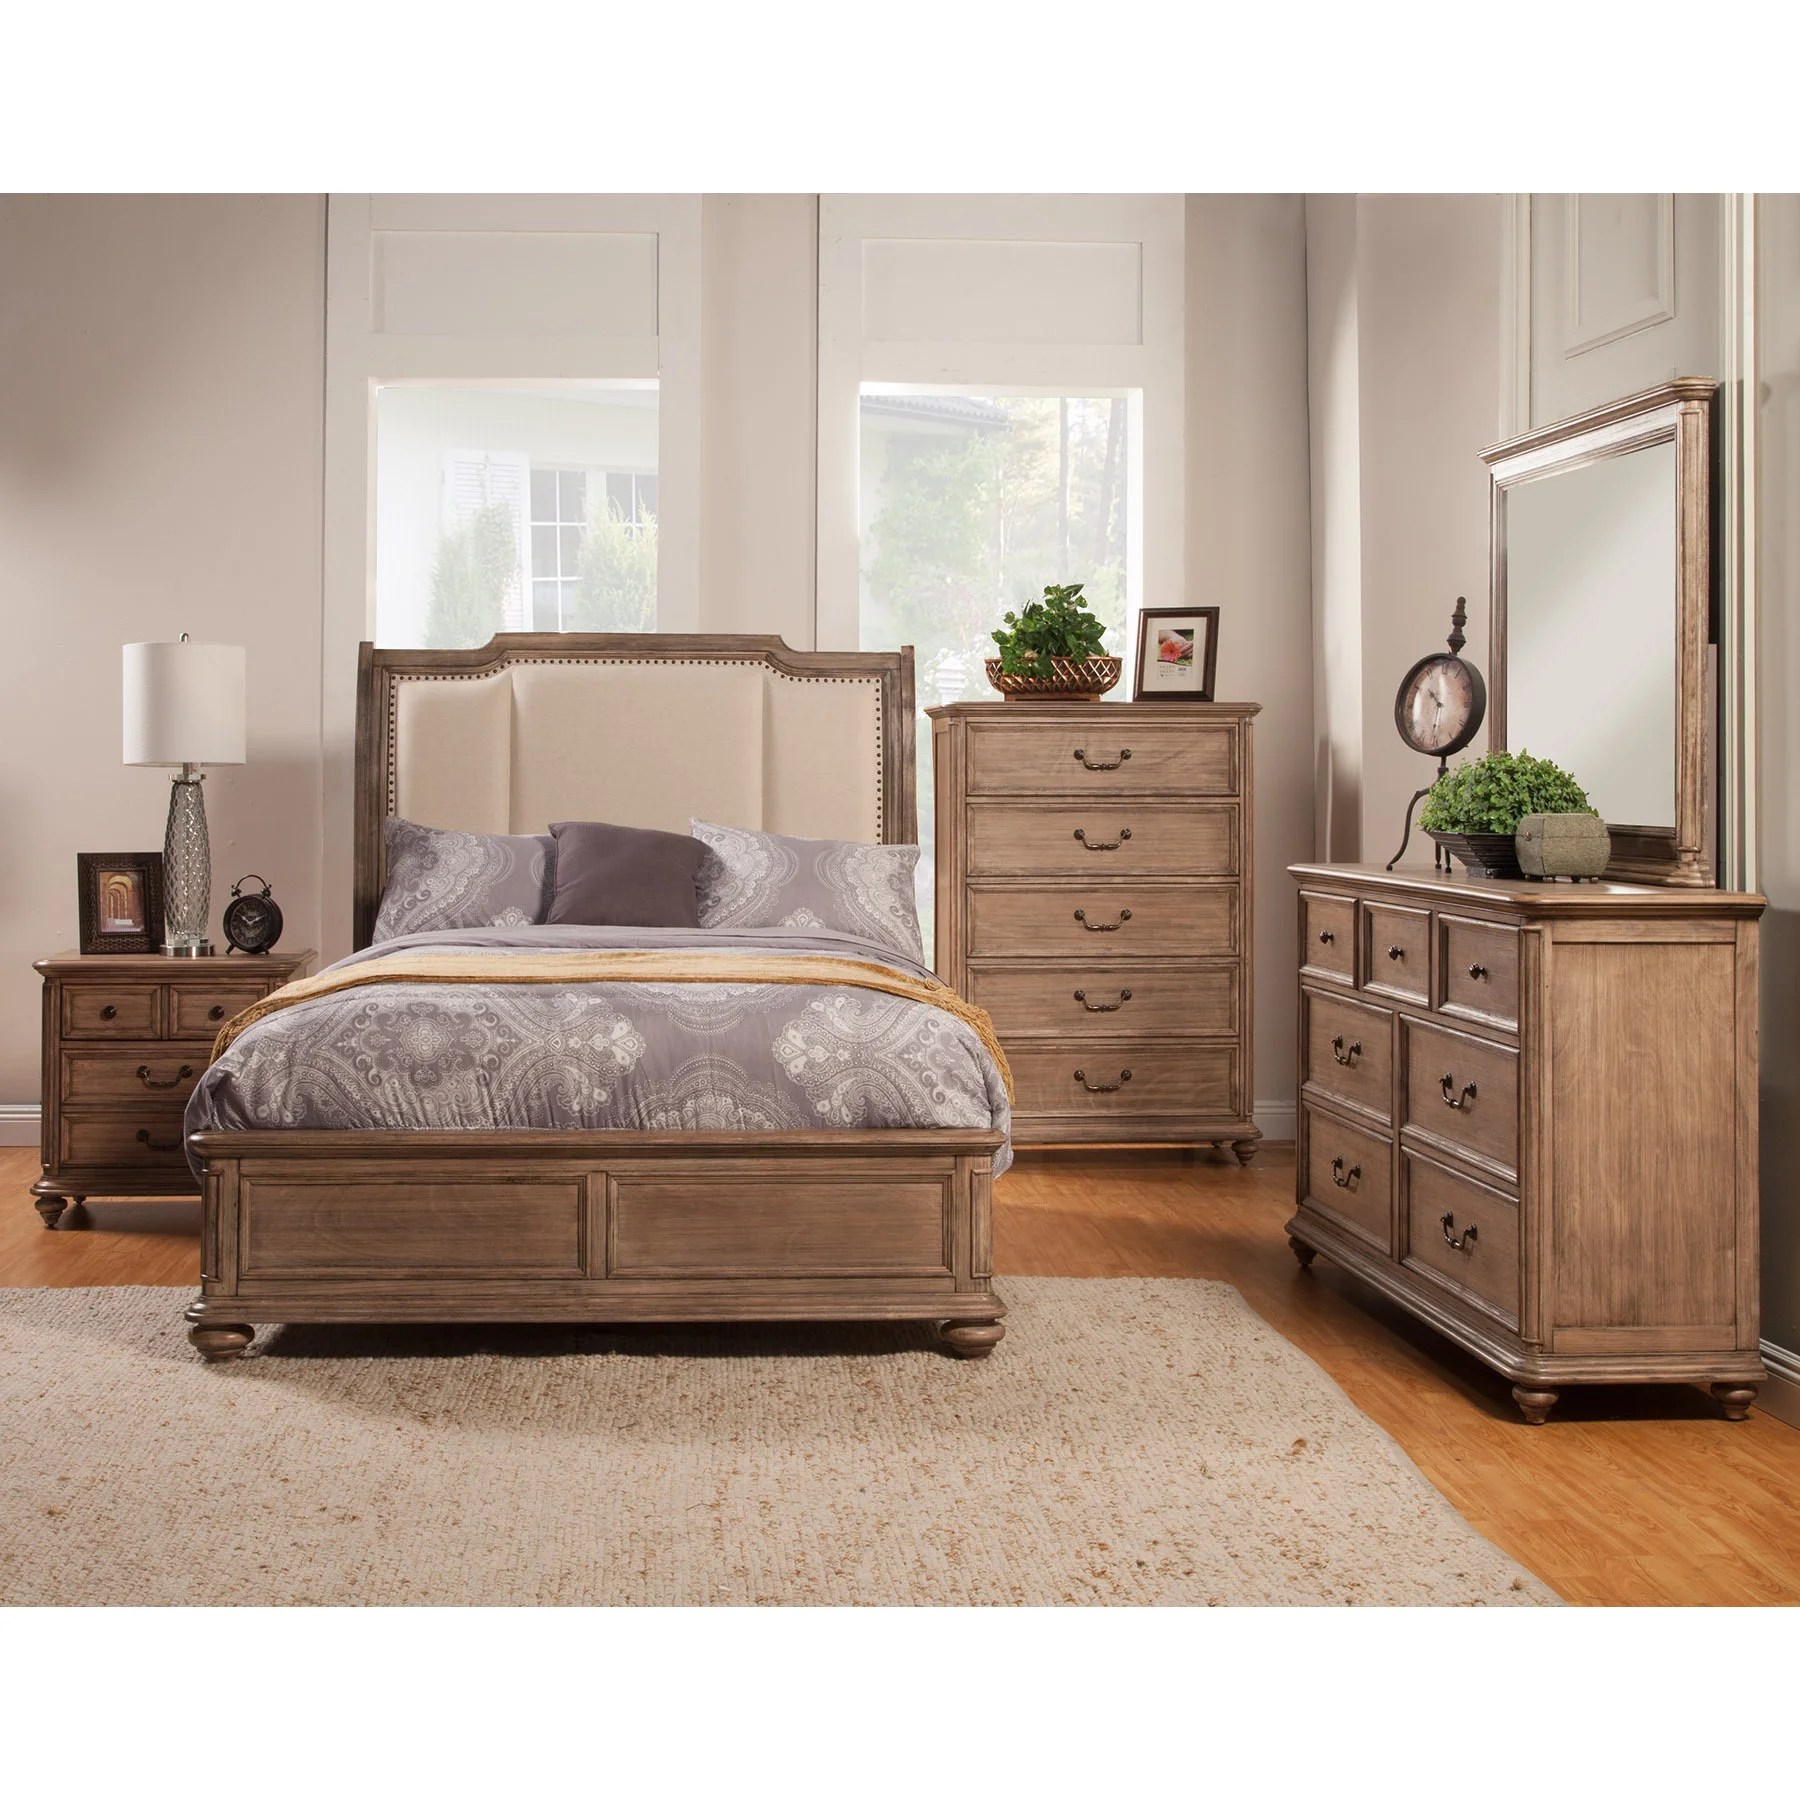 Sleigh Bed Headboard Alpine Melbourne Sleigh Bed With Uph Headboard